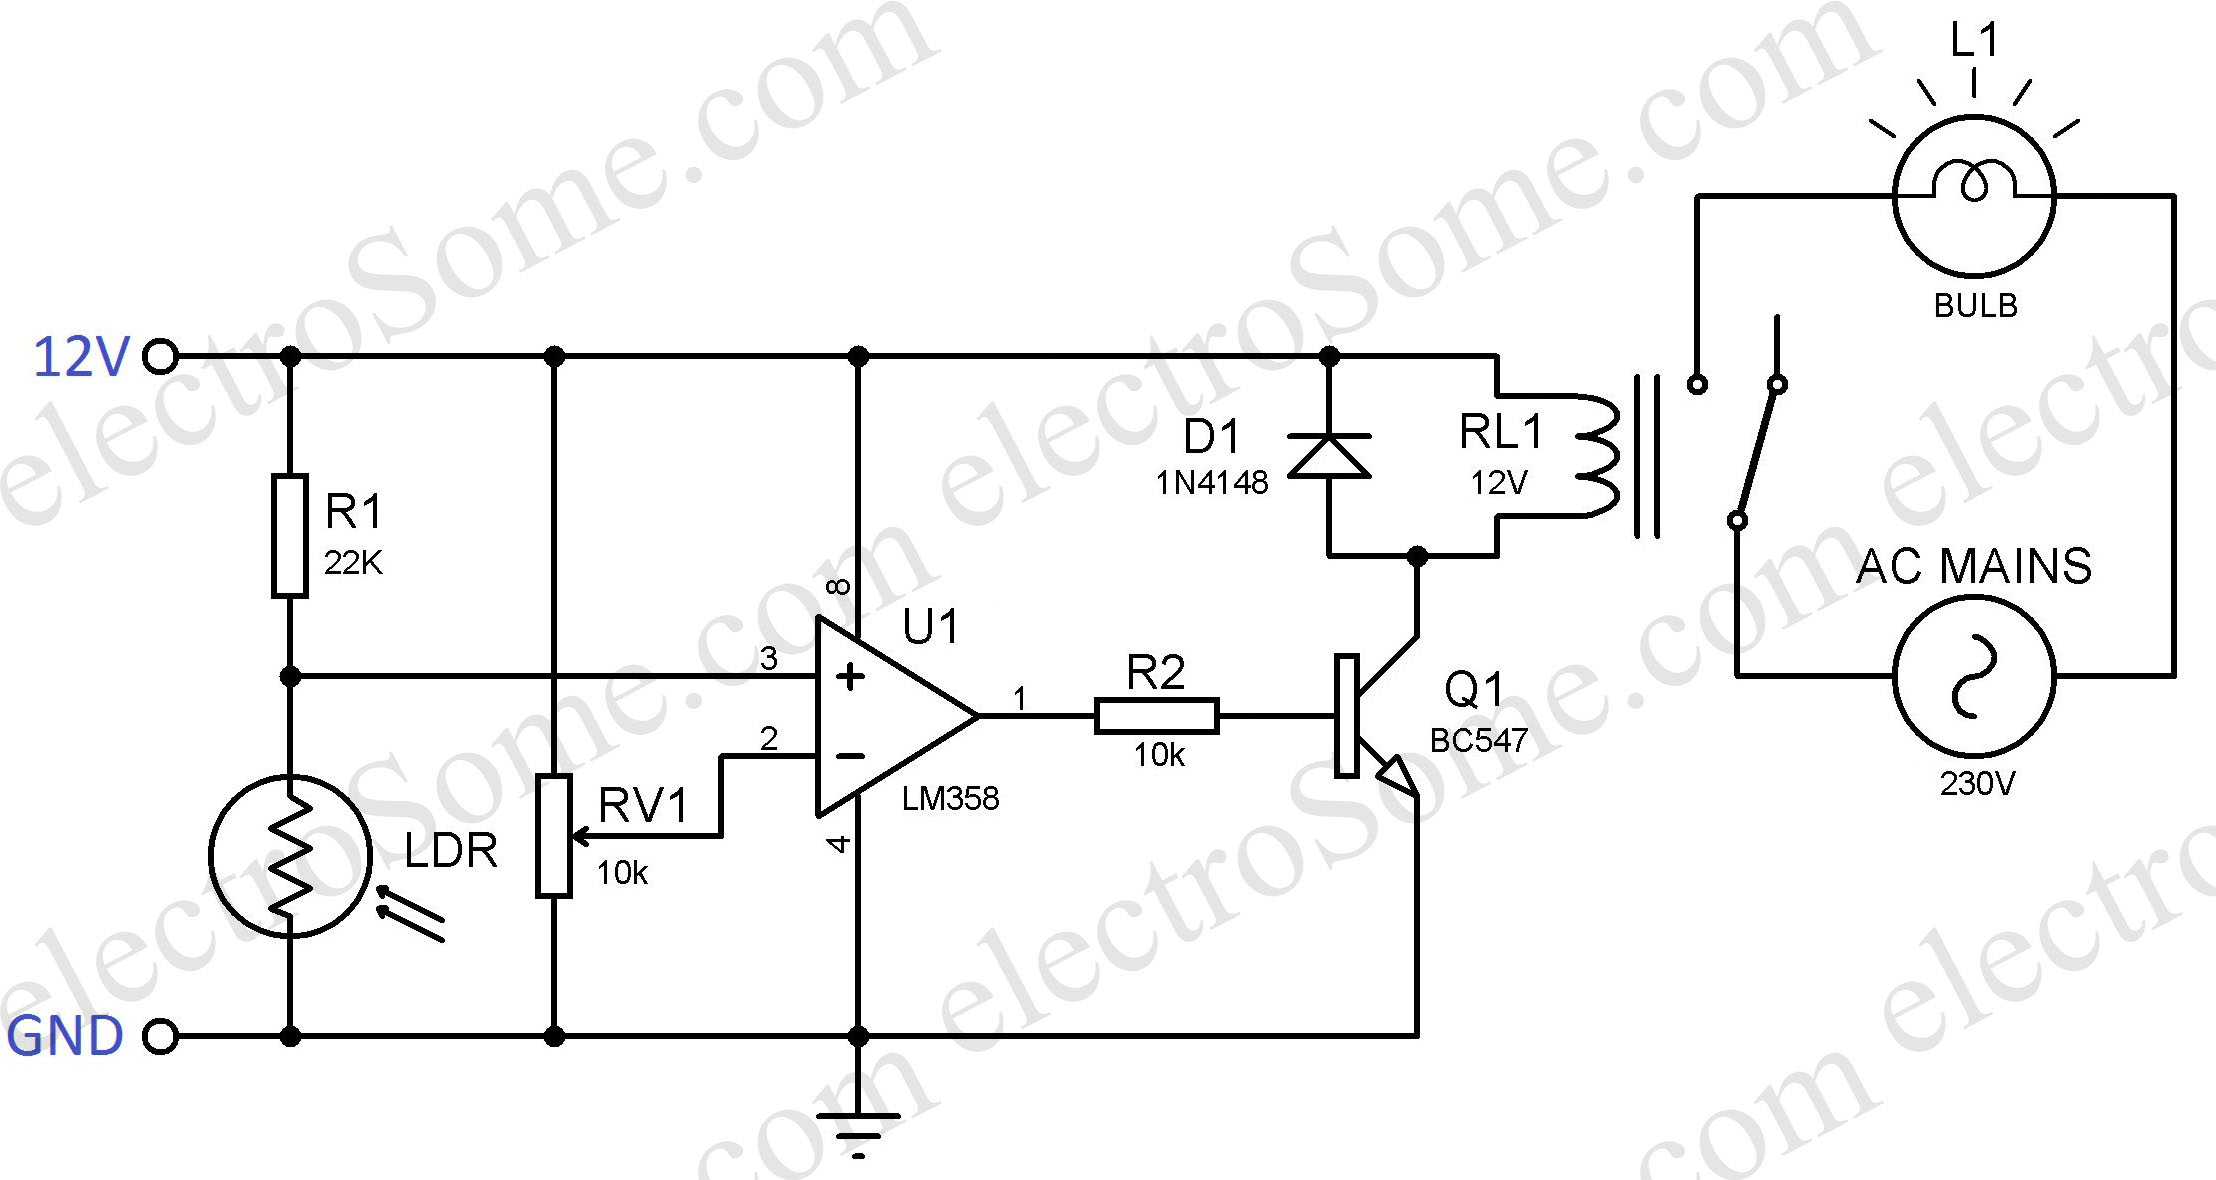 Automatic Night Lamp Using Ldr Typical Security Lighting Wiring Diagrams Circuit Diagram